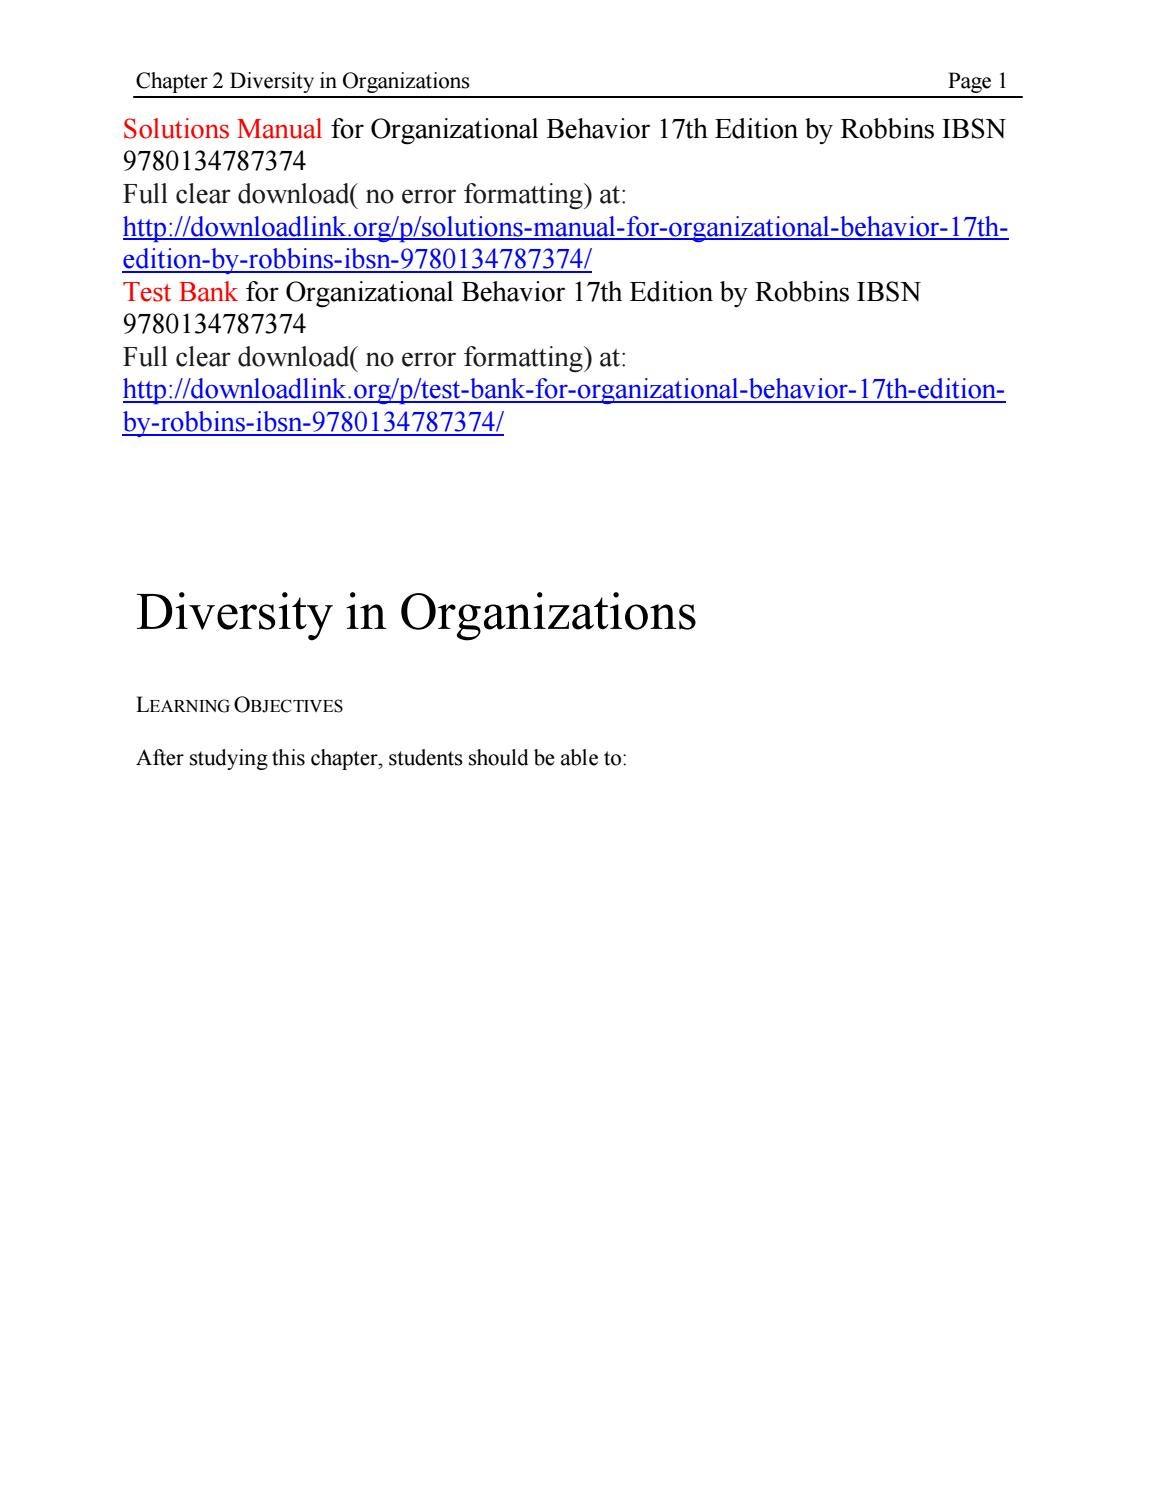 Solutions manual for organizational behavior 17th edition by robbins ibsn  9780134787374 by James912 - issuu